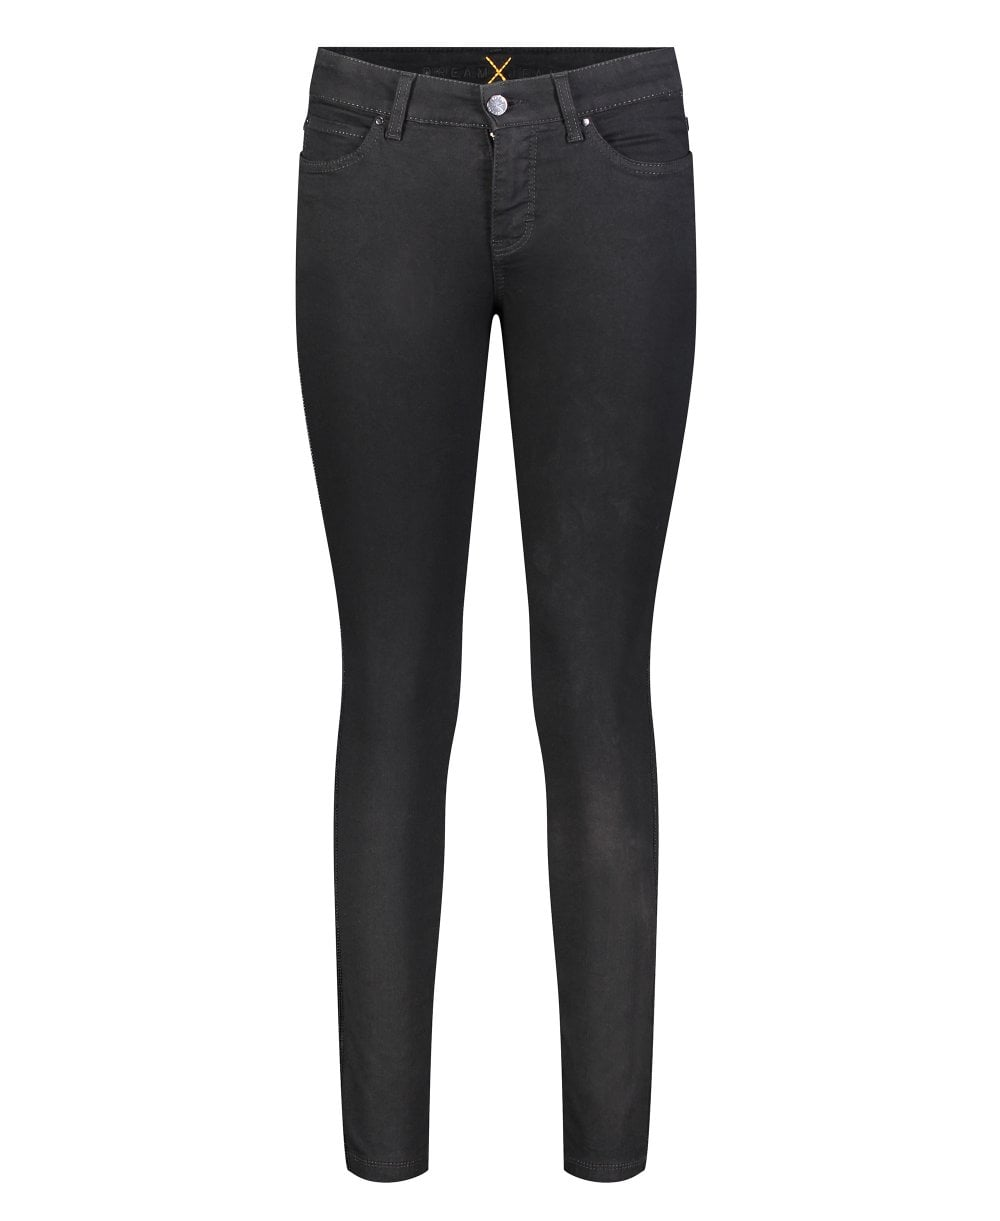 mac dream skinny sequin jeans jeans from luxury uk. Black Bedroom Furniture Sets. Home Design Ideas